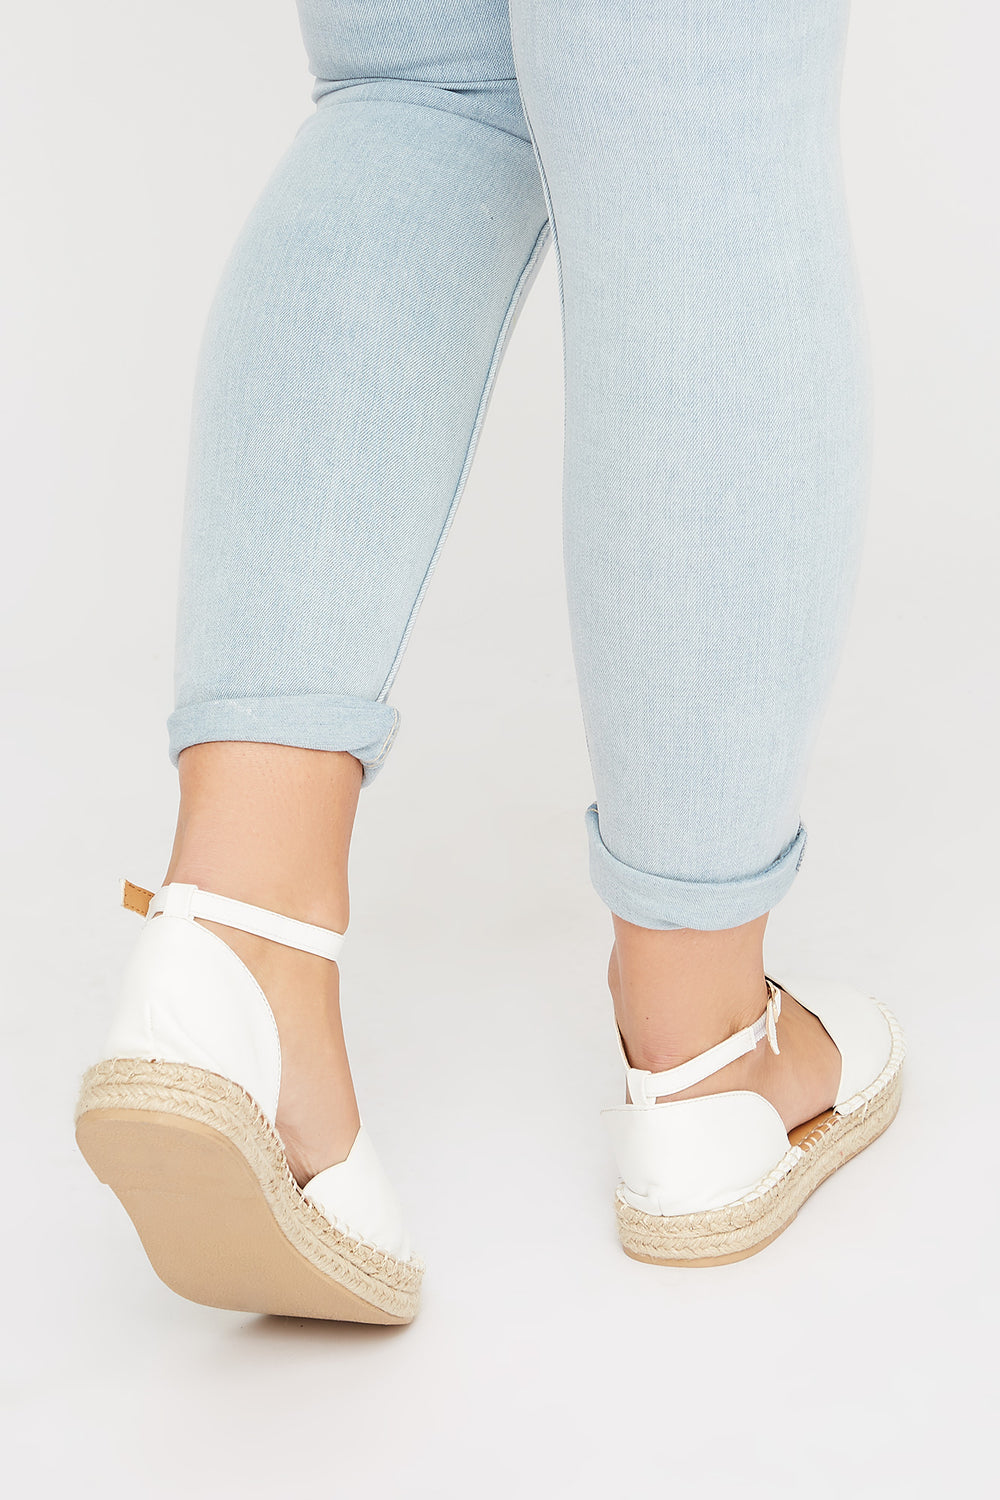 Scalloped Espadrille White